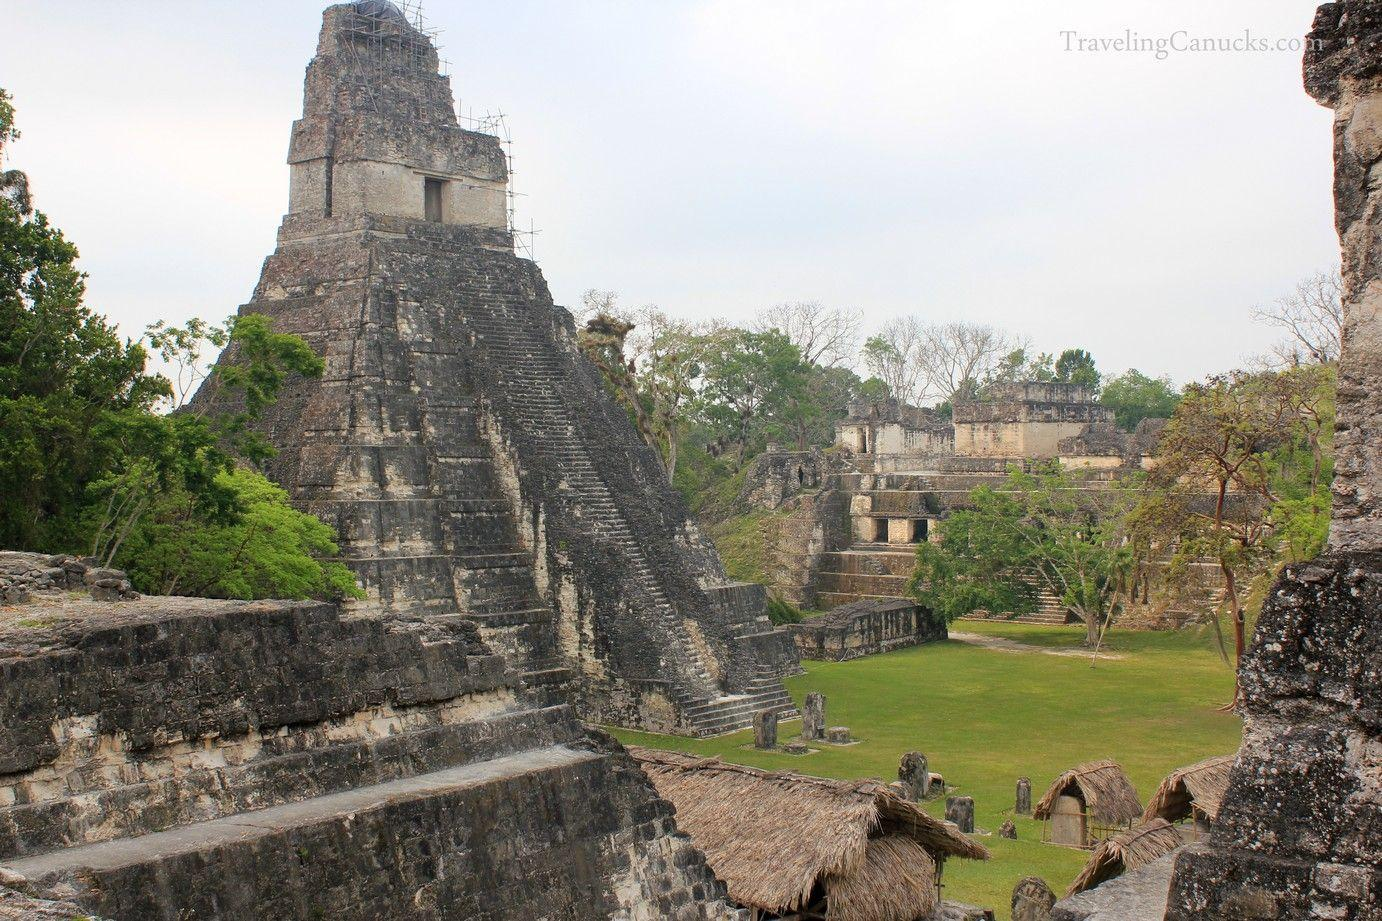 Pin by Guidarelli Archeologia on TIKAL (Yax Mutal/Yax Mutul) - Petén ...